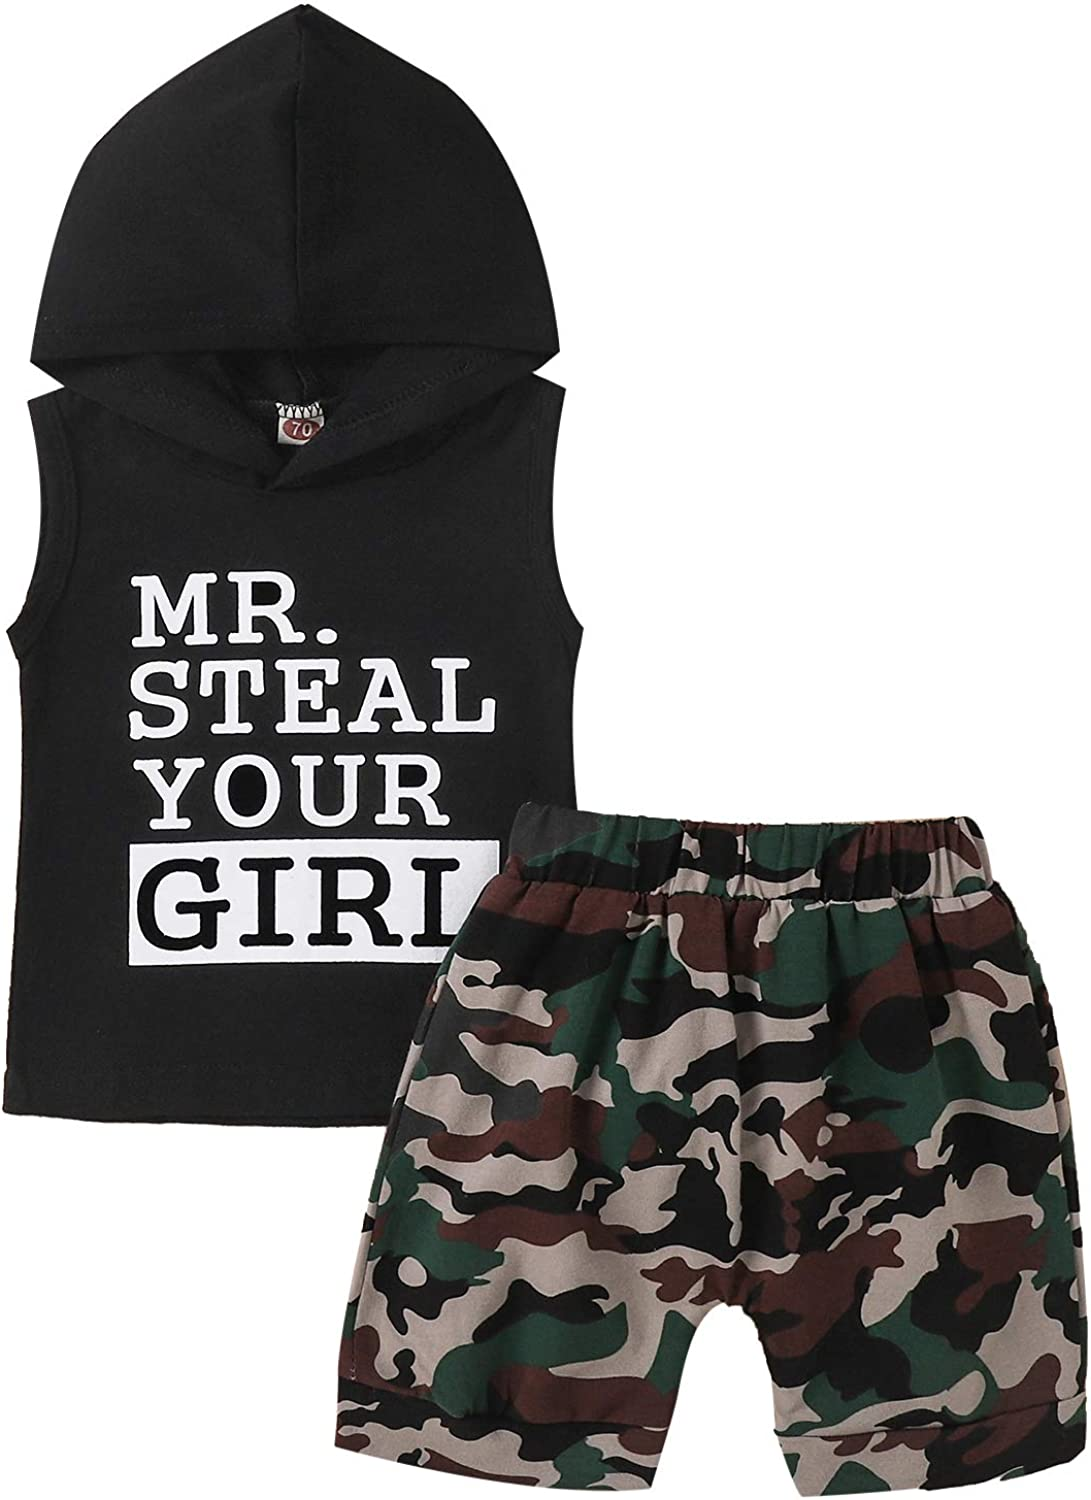 KnniMorning TEES Boy's 2Pcs Sleeveless Clothes Set Letter Printing Hooded Top Camouflage Shorts Toddler Boy Summer Suit